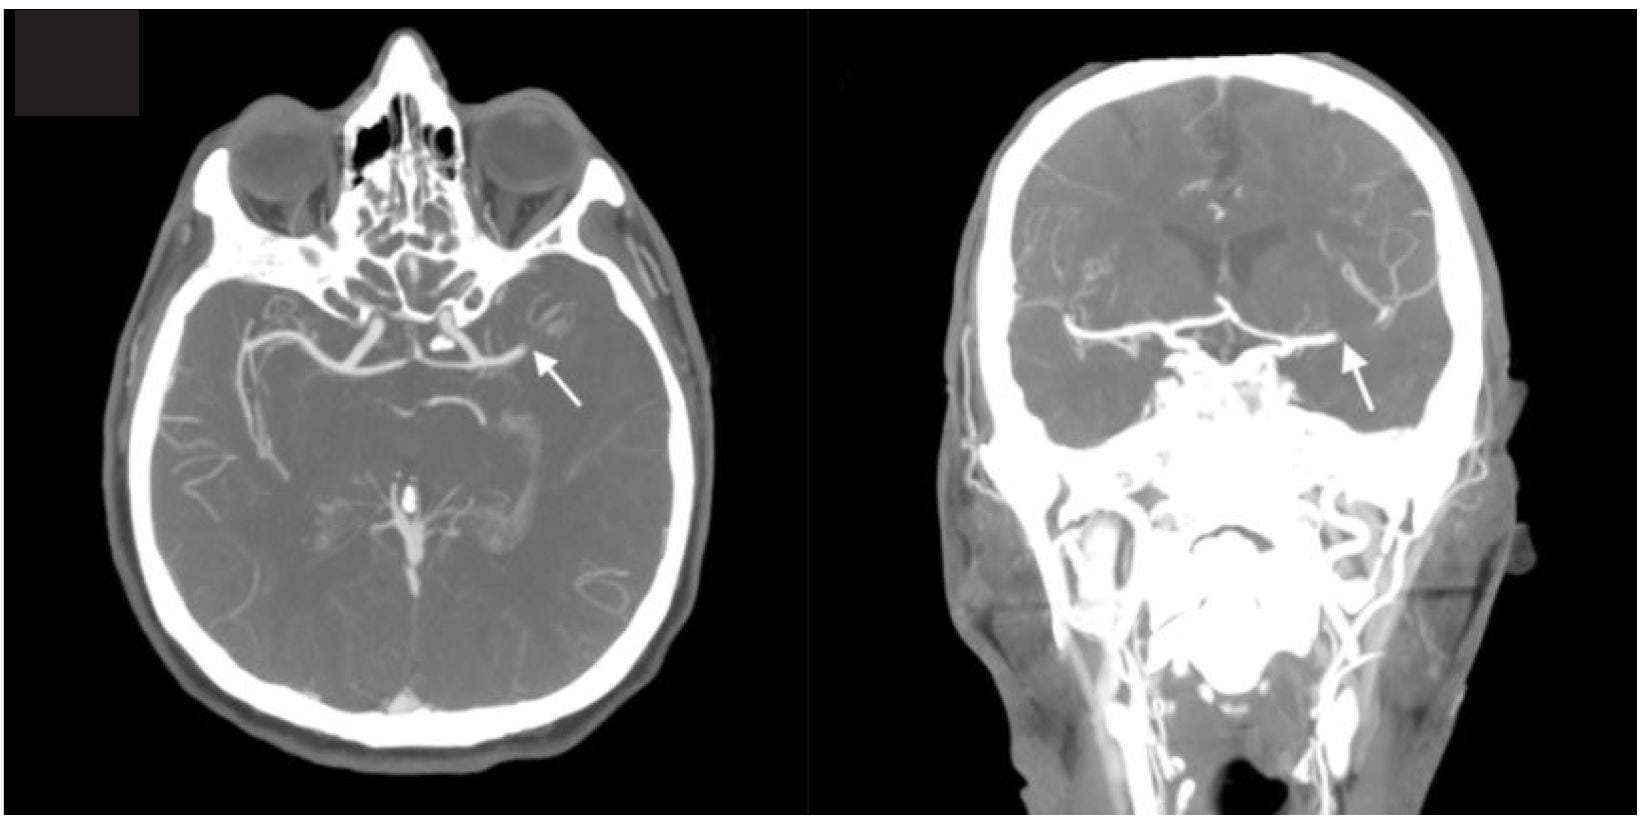 Usefulness of Computed Tomography Perfusion in Treatment of an Acute Stroke Patient with Unknown Time of Symptom Onset